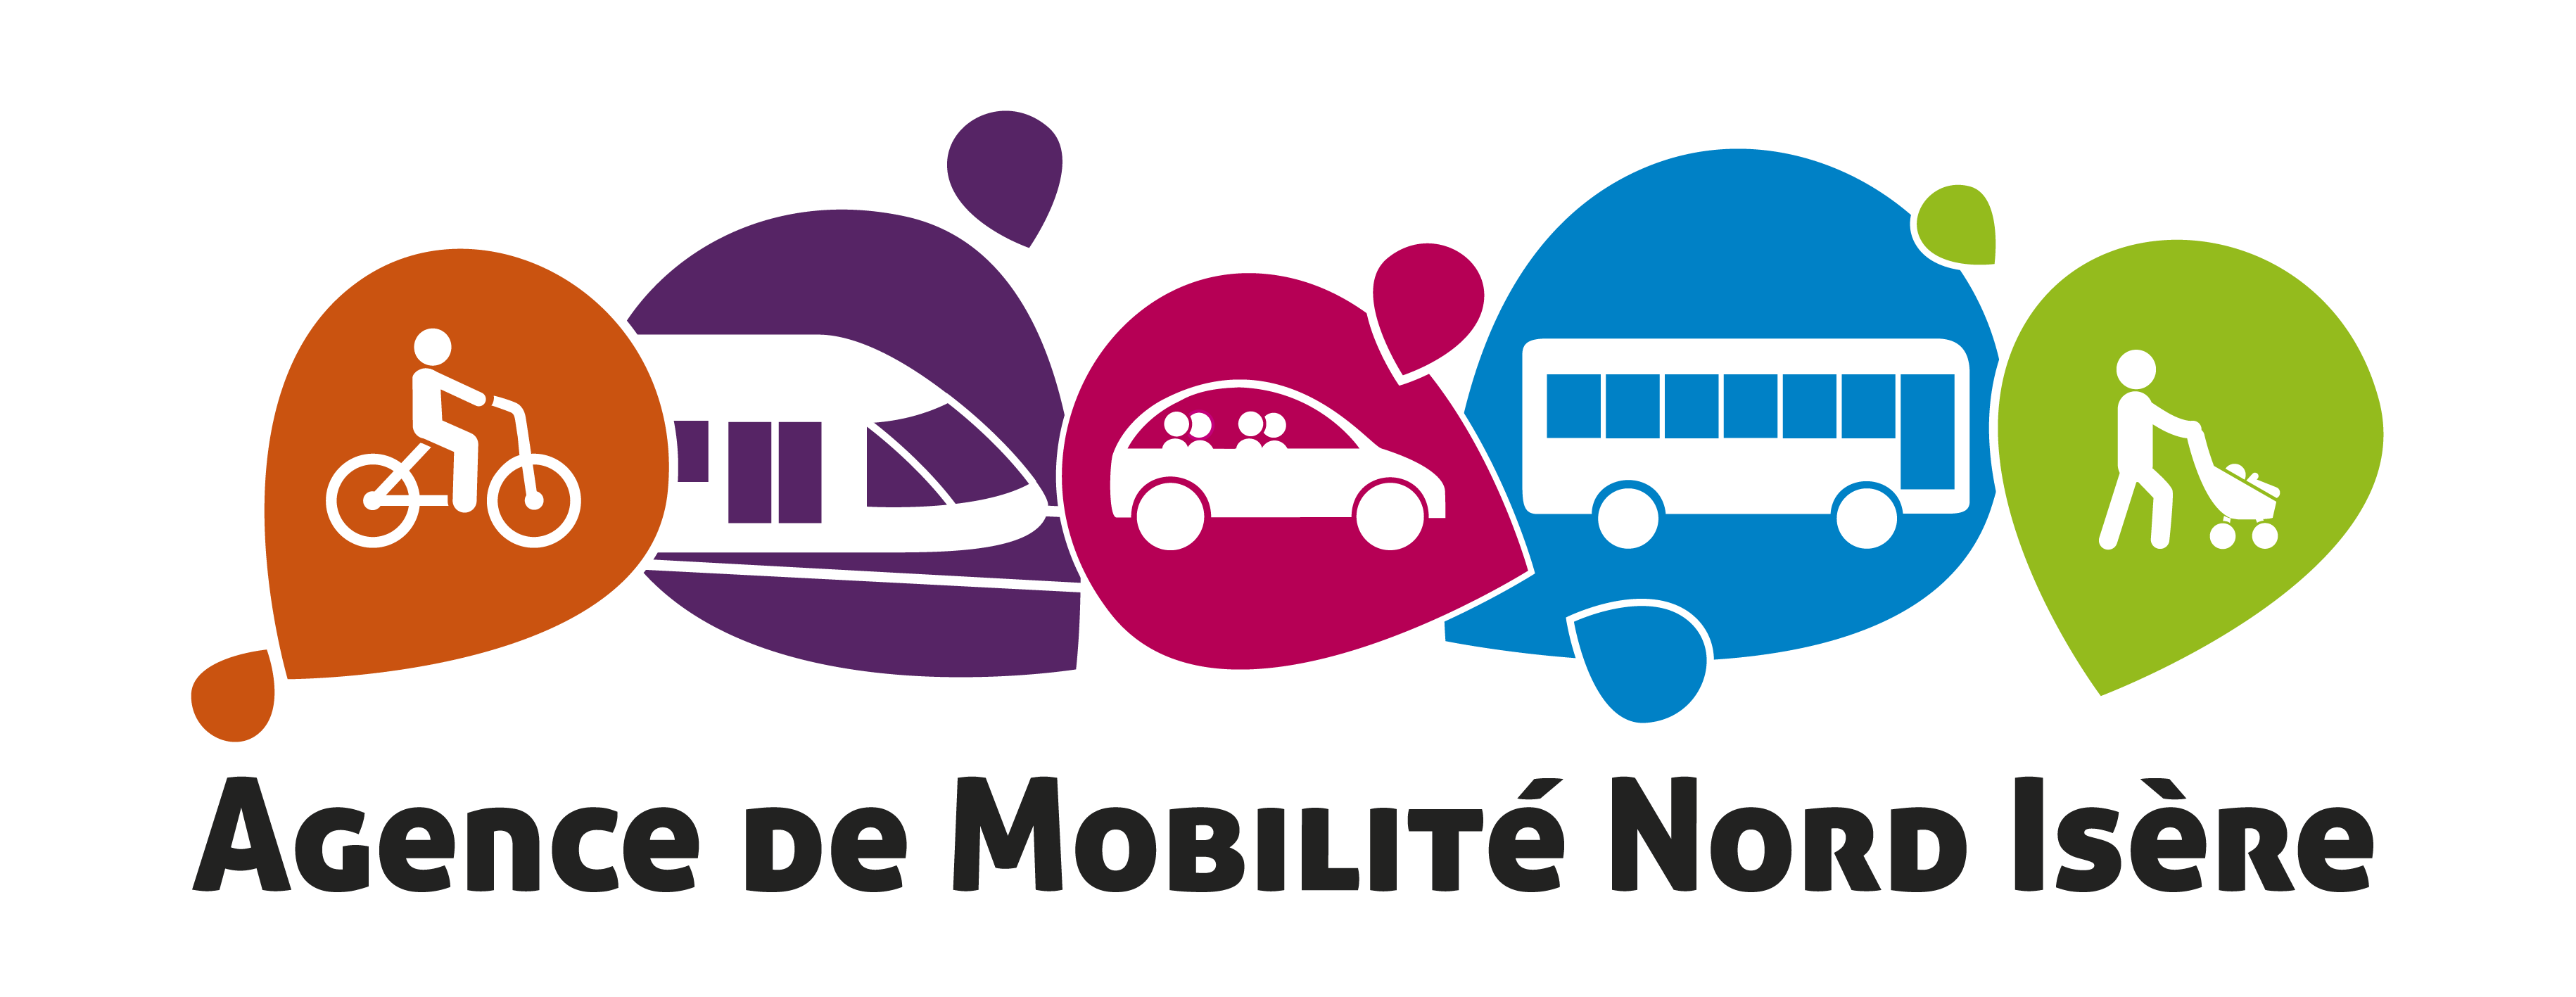 Logotype_Agence_de_Mobilitee_Nord-Iseere_contour.png